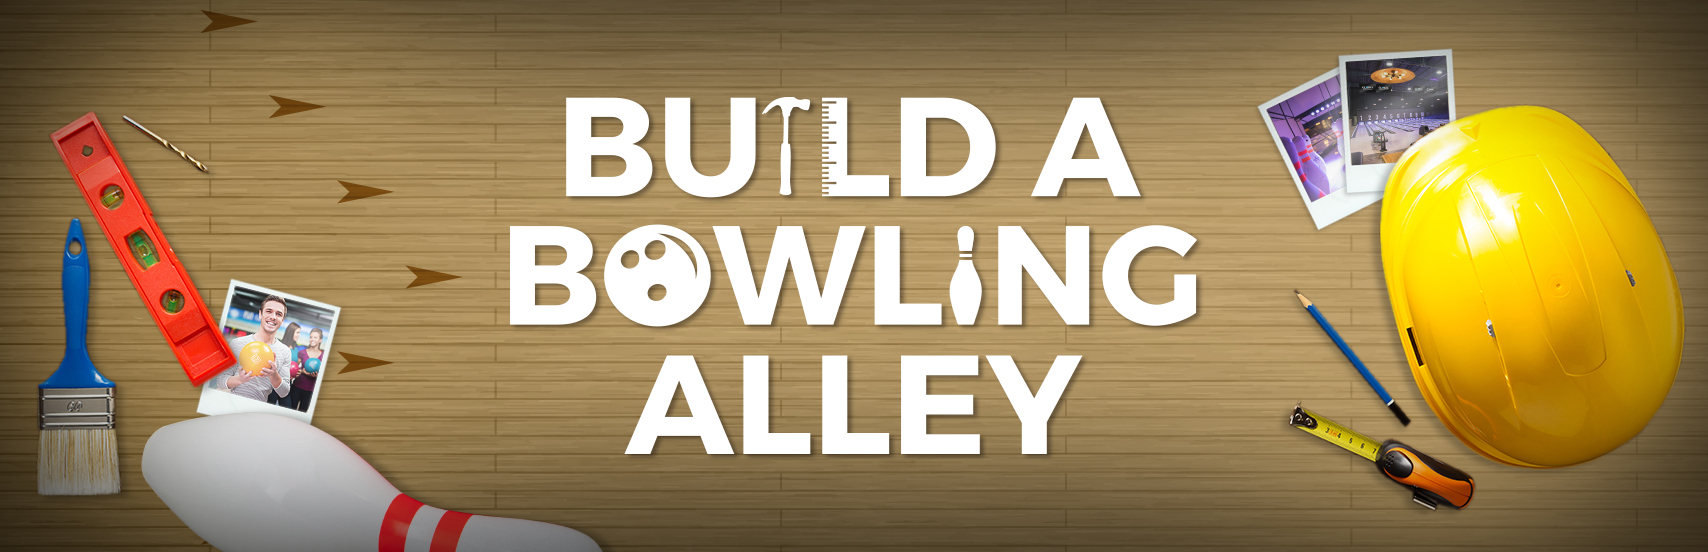 Global Bowling Inc  | Build A Bowling Alley